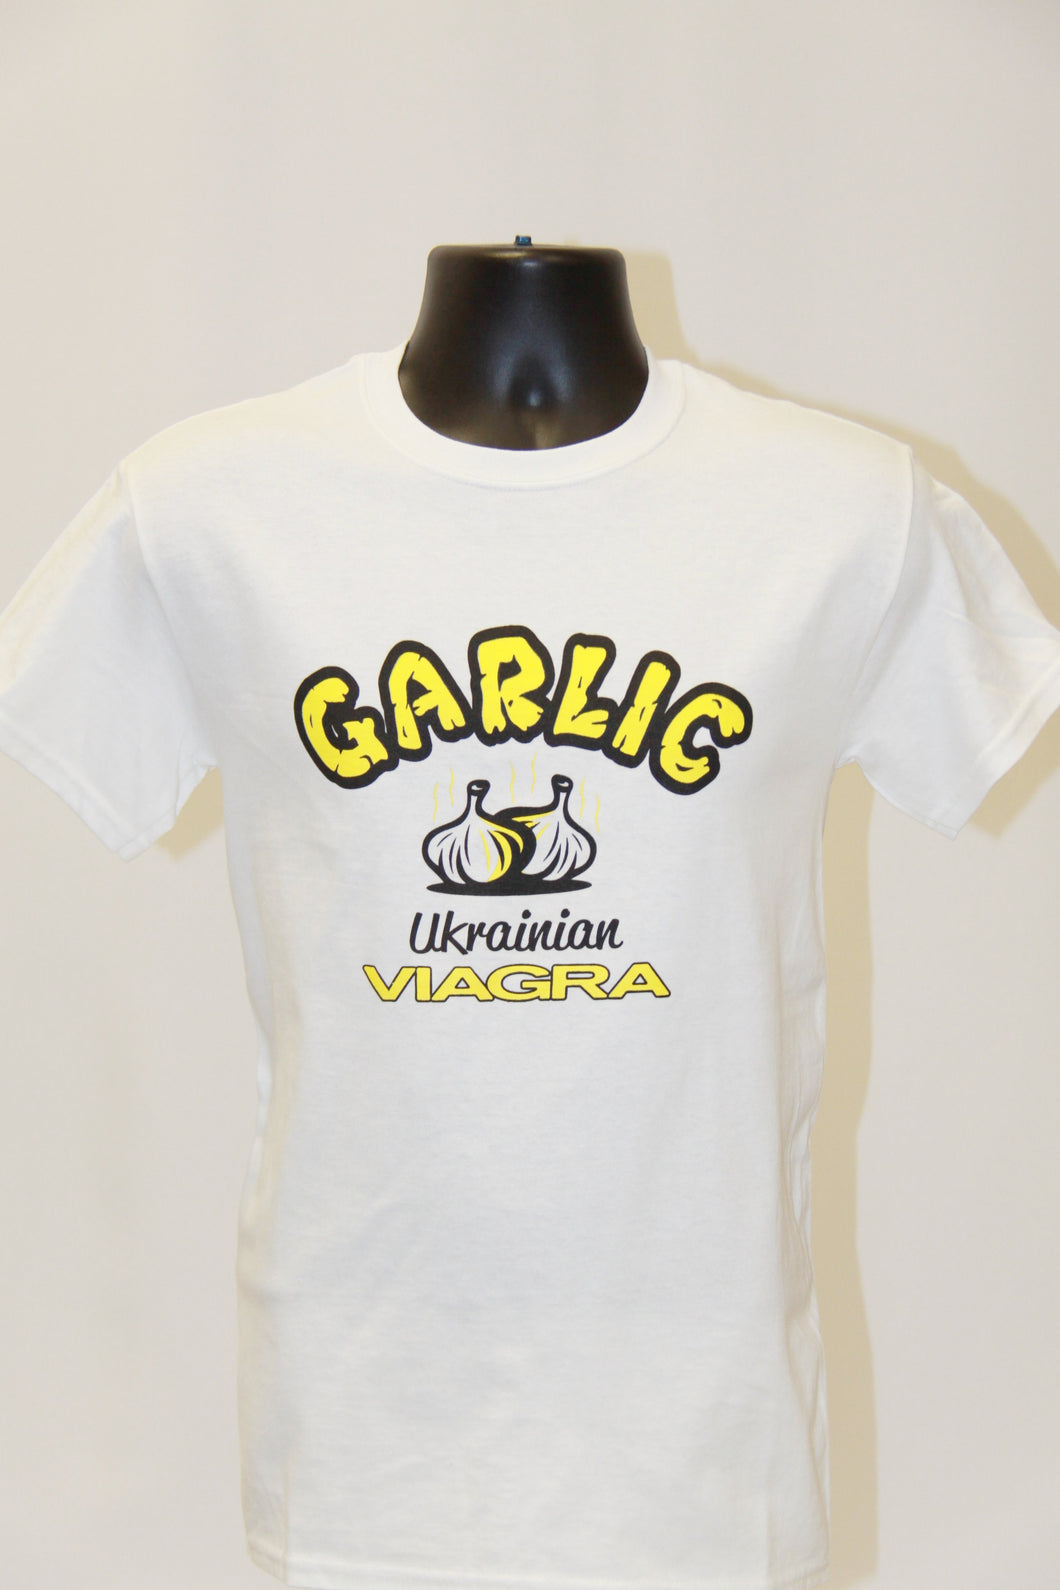 Garlic Ukrainian Viagra T-Shirt